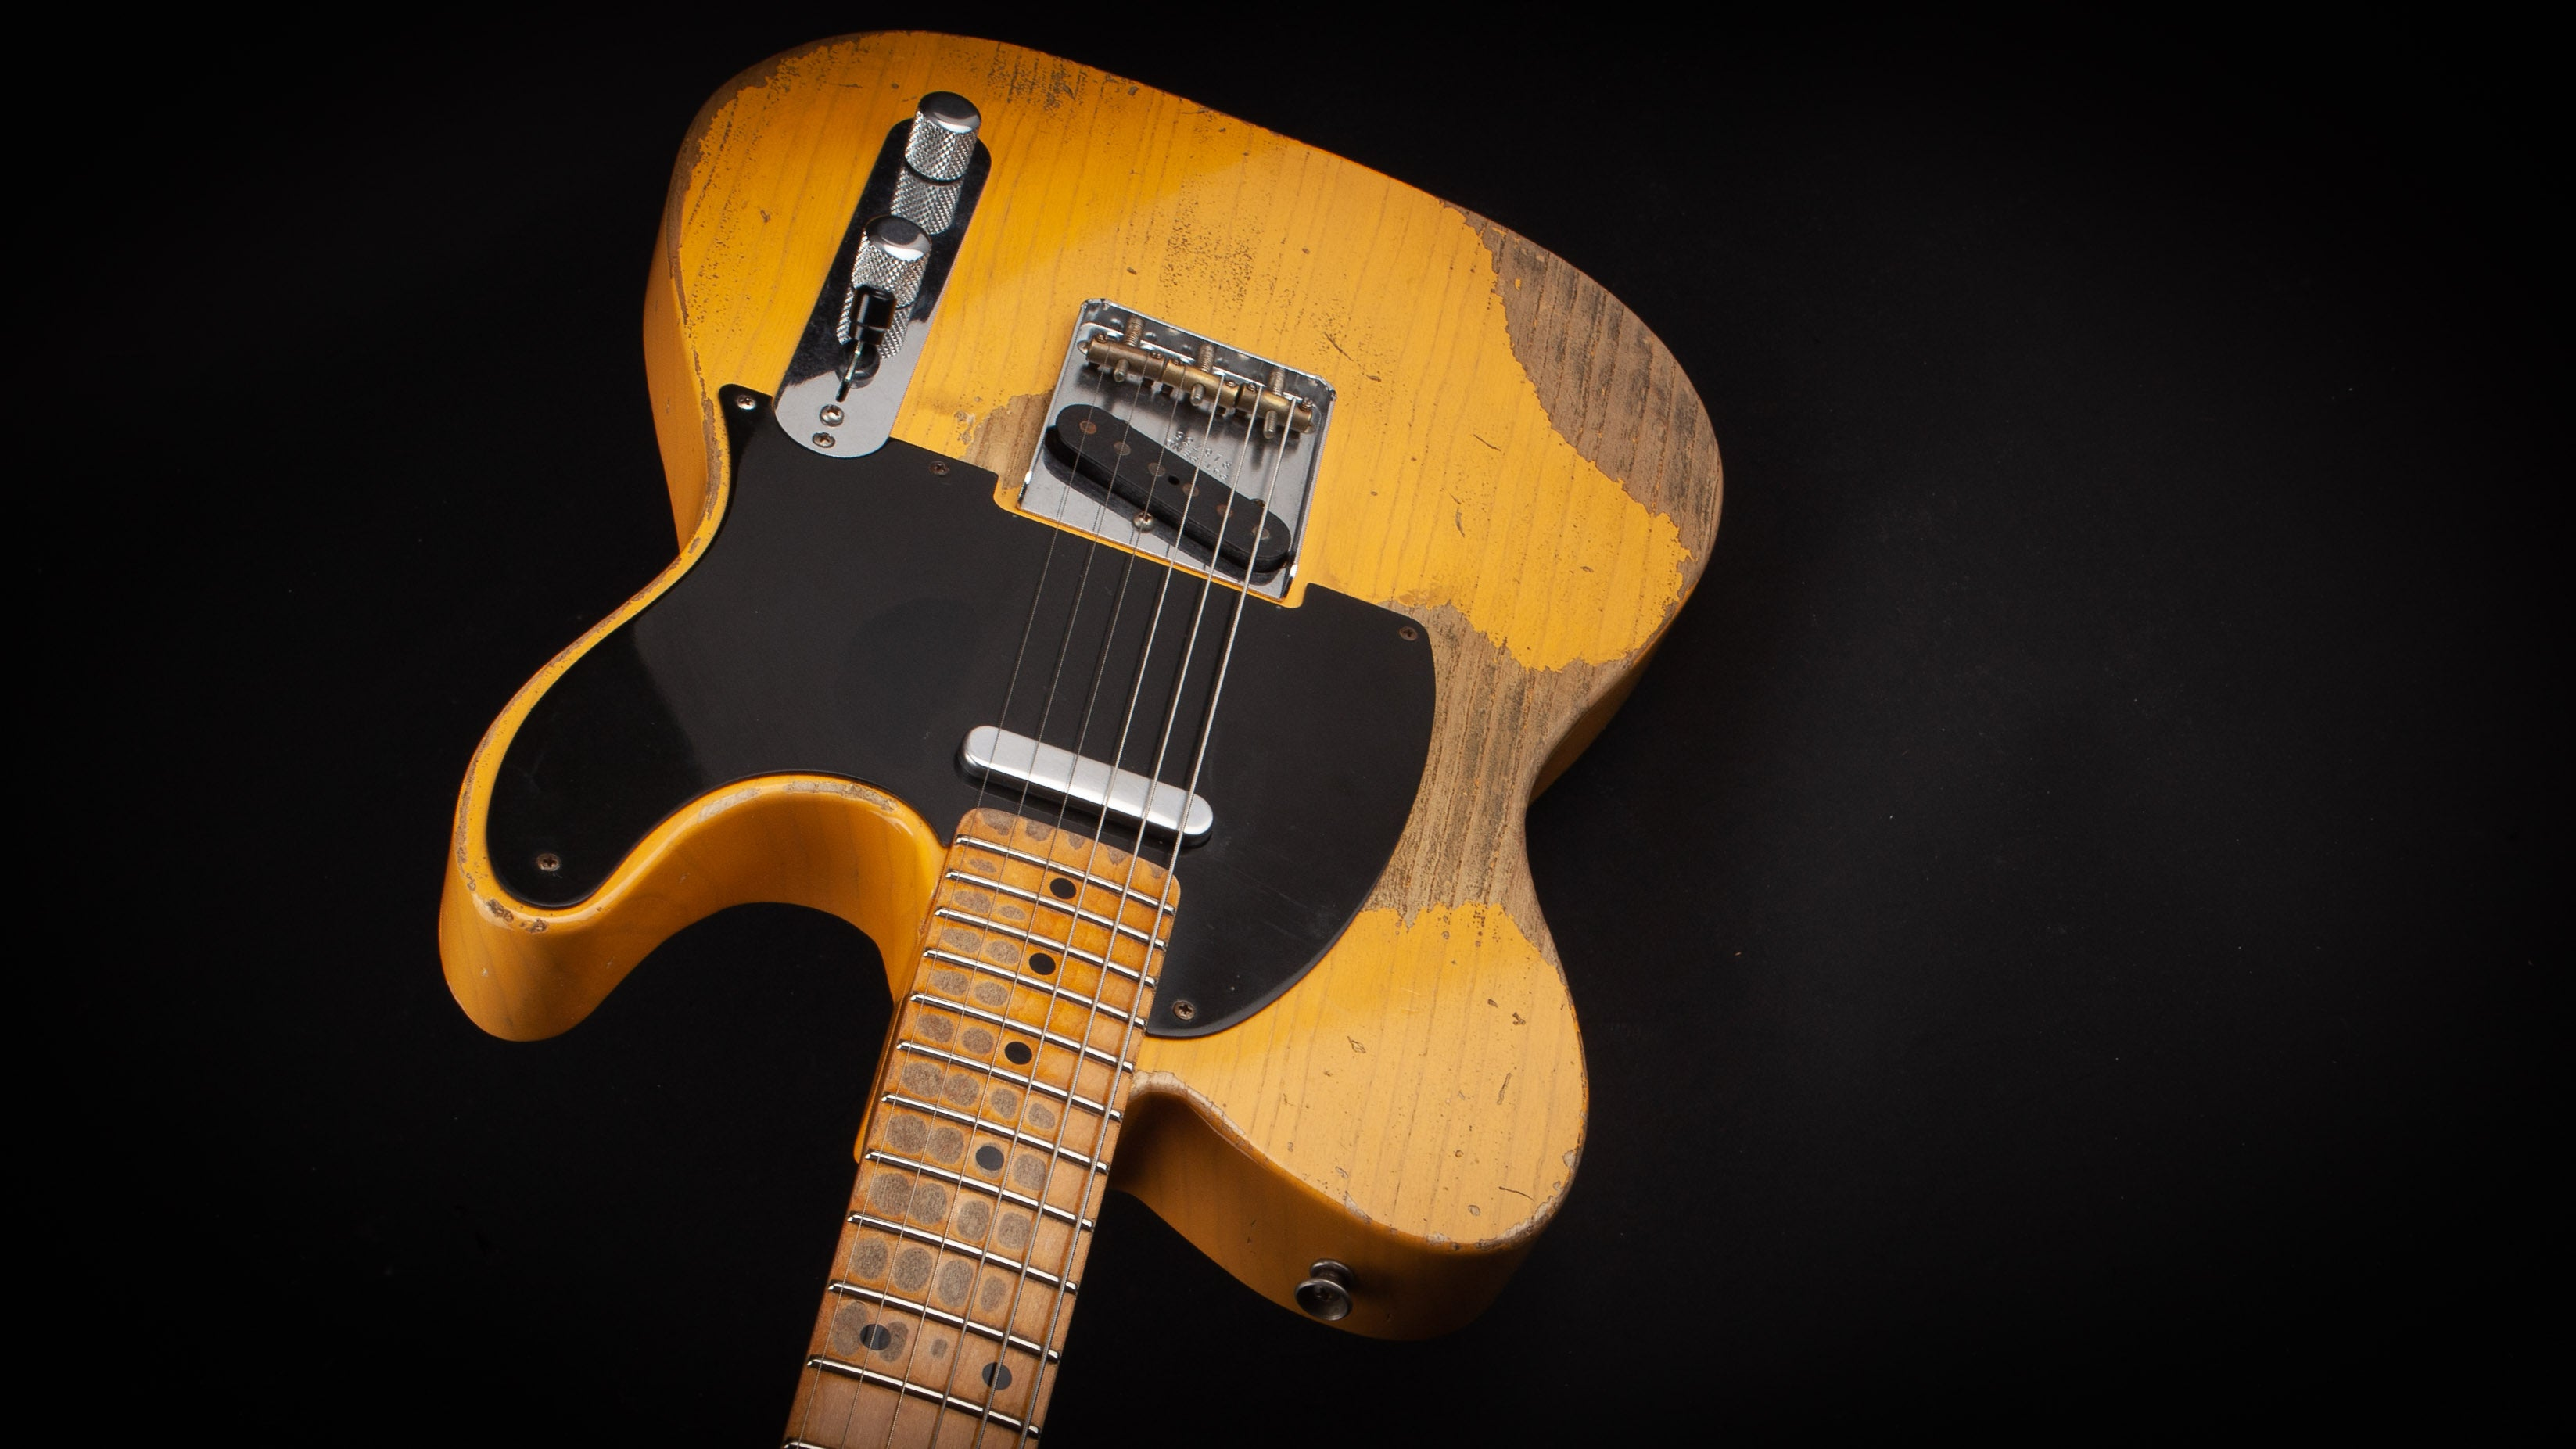 Fender Custom Shop 52 Telecaster Heavy Relic Butterscotch Blonde #R16756